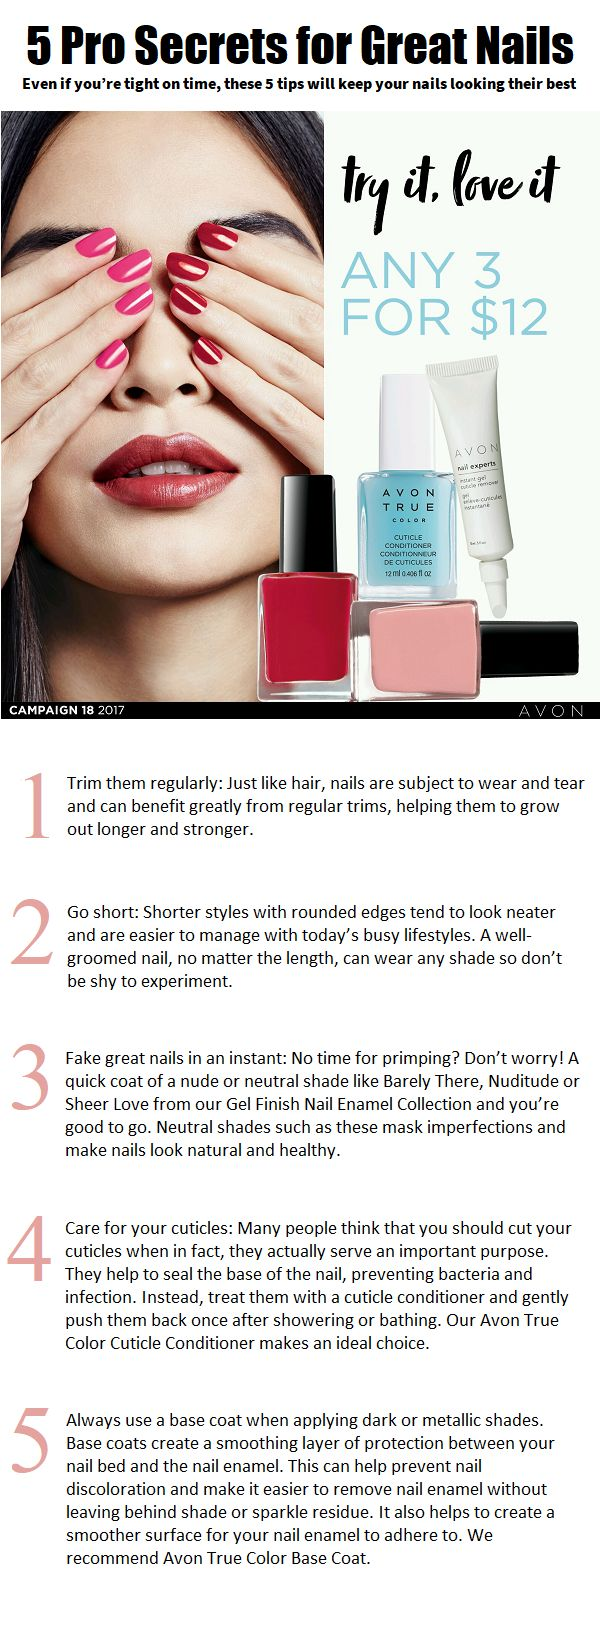 And… don't miss the Nail Event in our C18 Brochure to save big on a wide selection of shades and nail essentials. rosemarieclark.avonrep@gmail.com Serving Saint John N.B and surrounding areas.